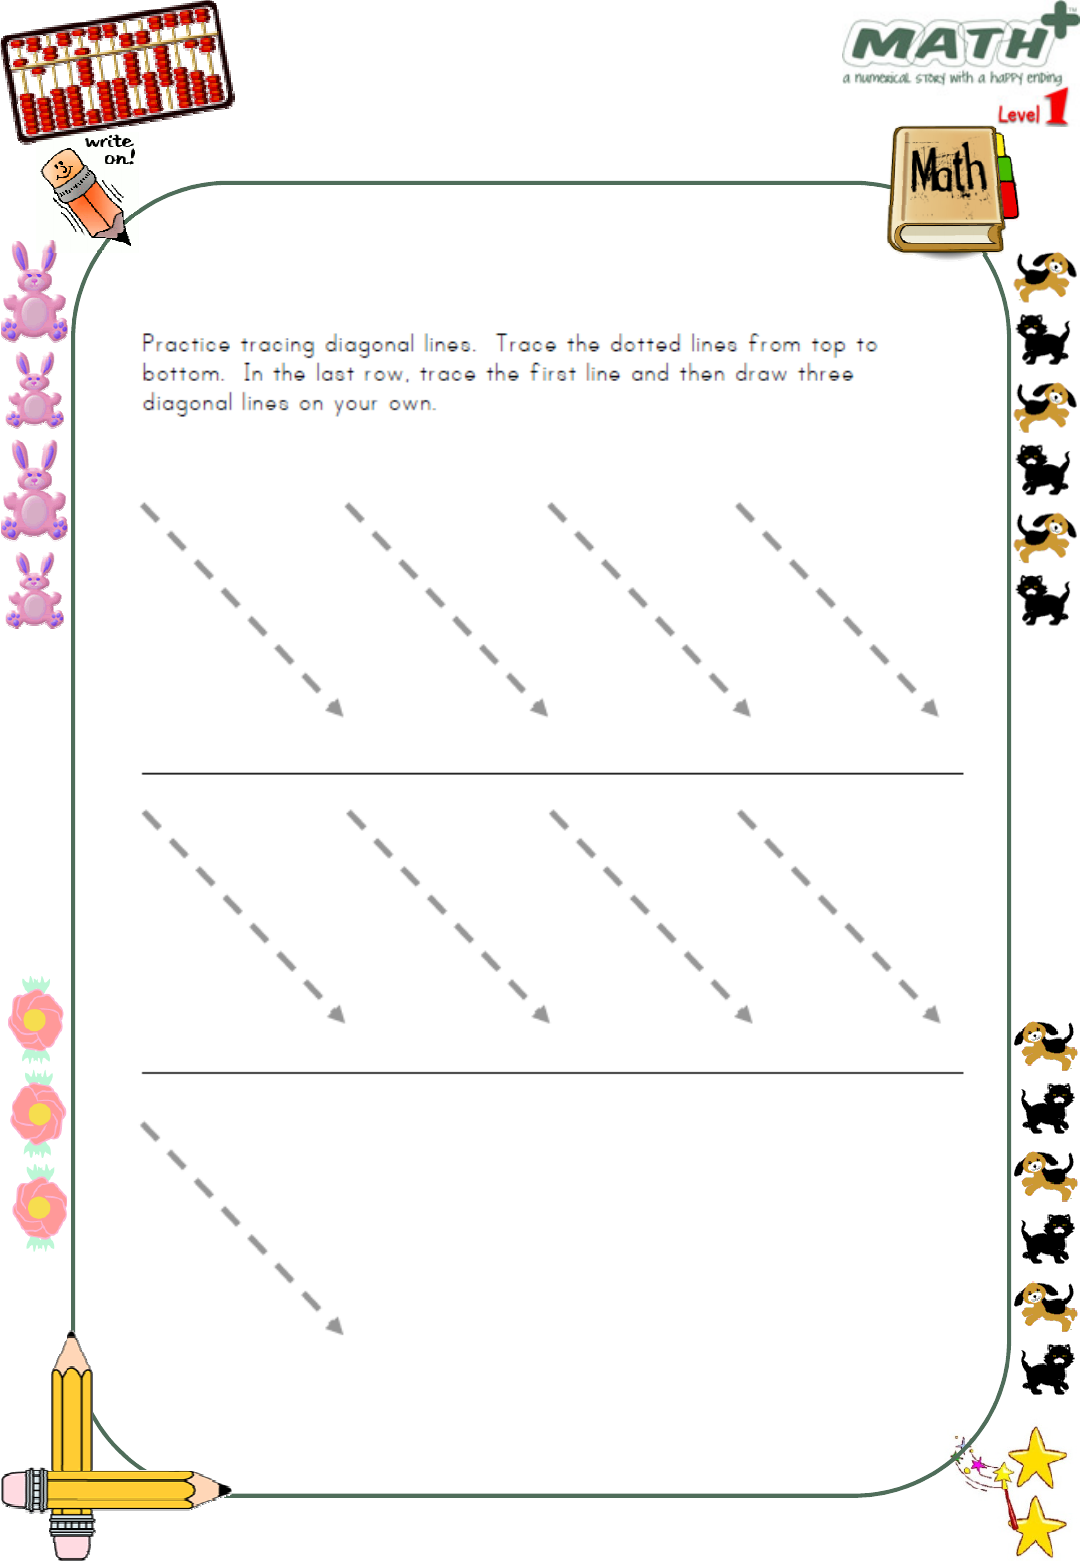 Tracing Lines Worksheet - [Pdf Document]